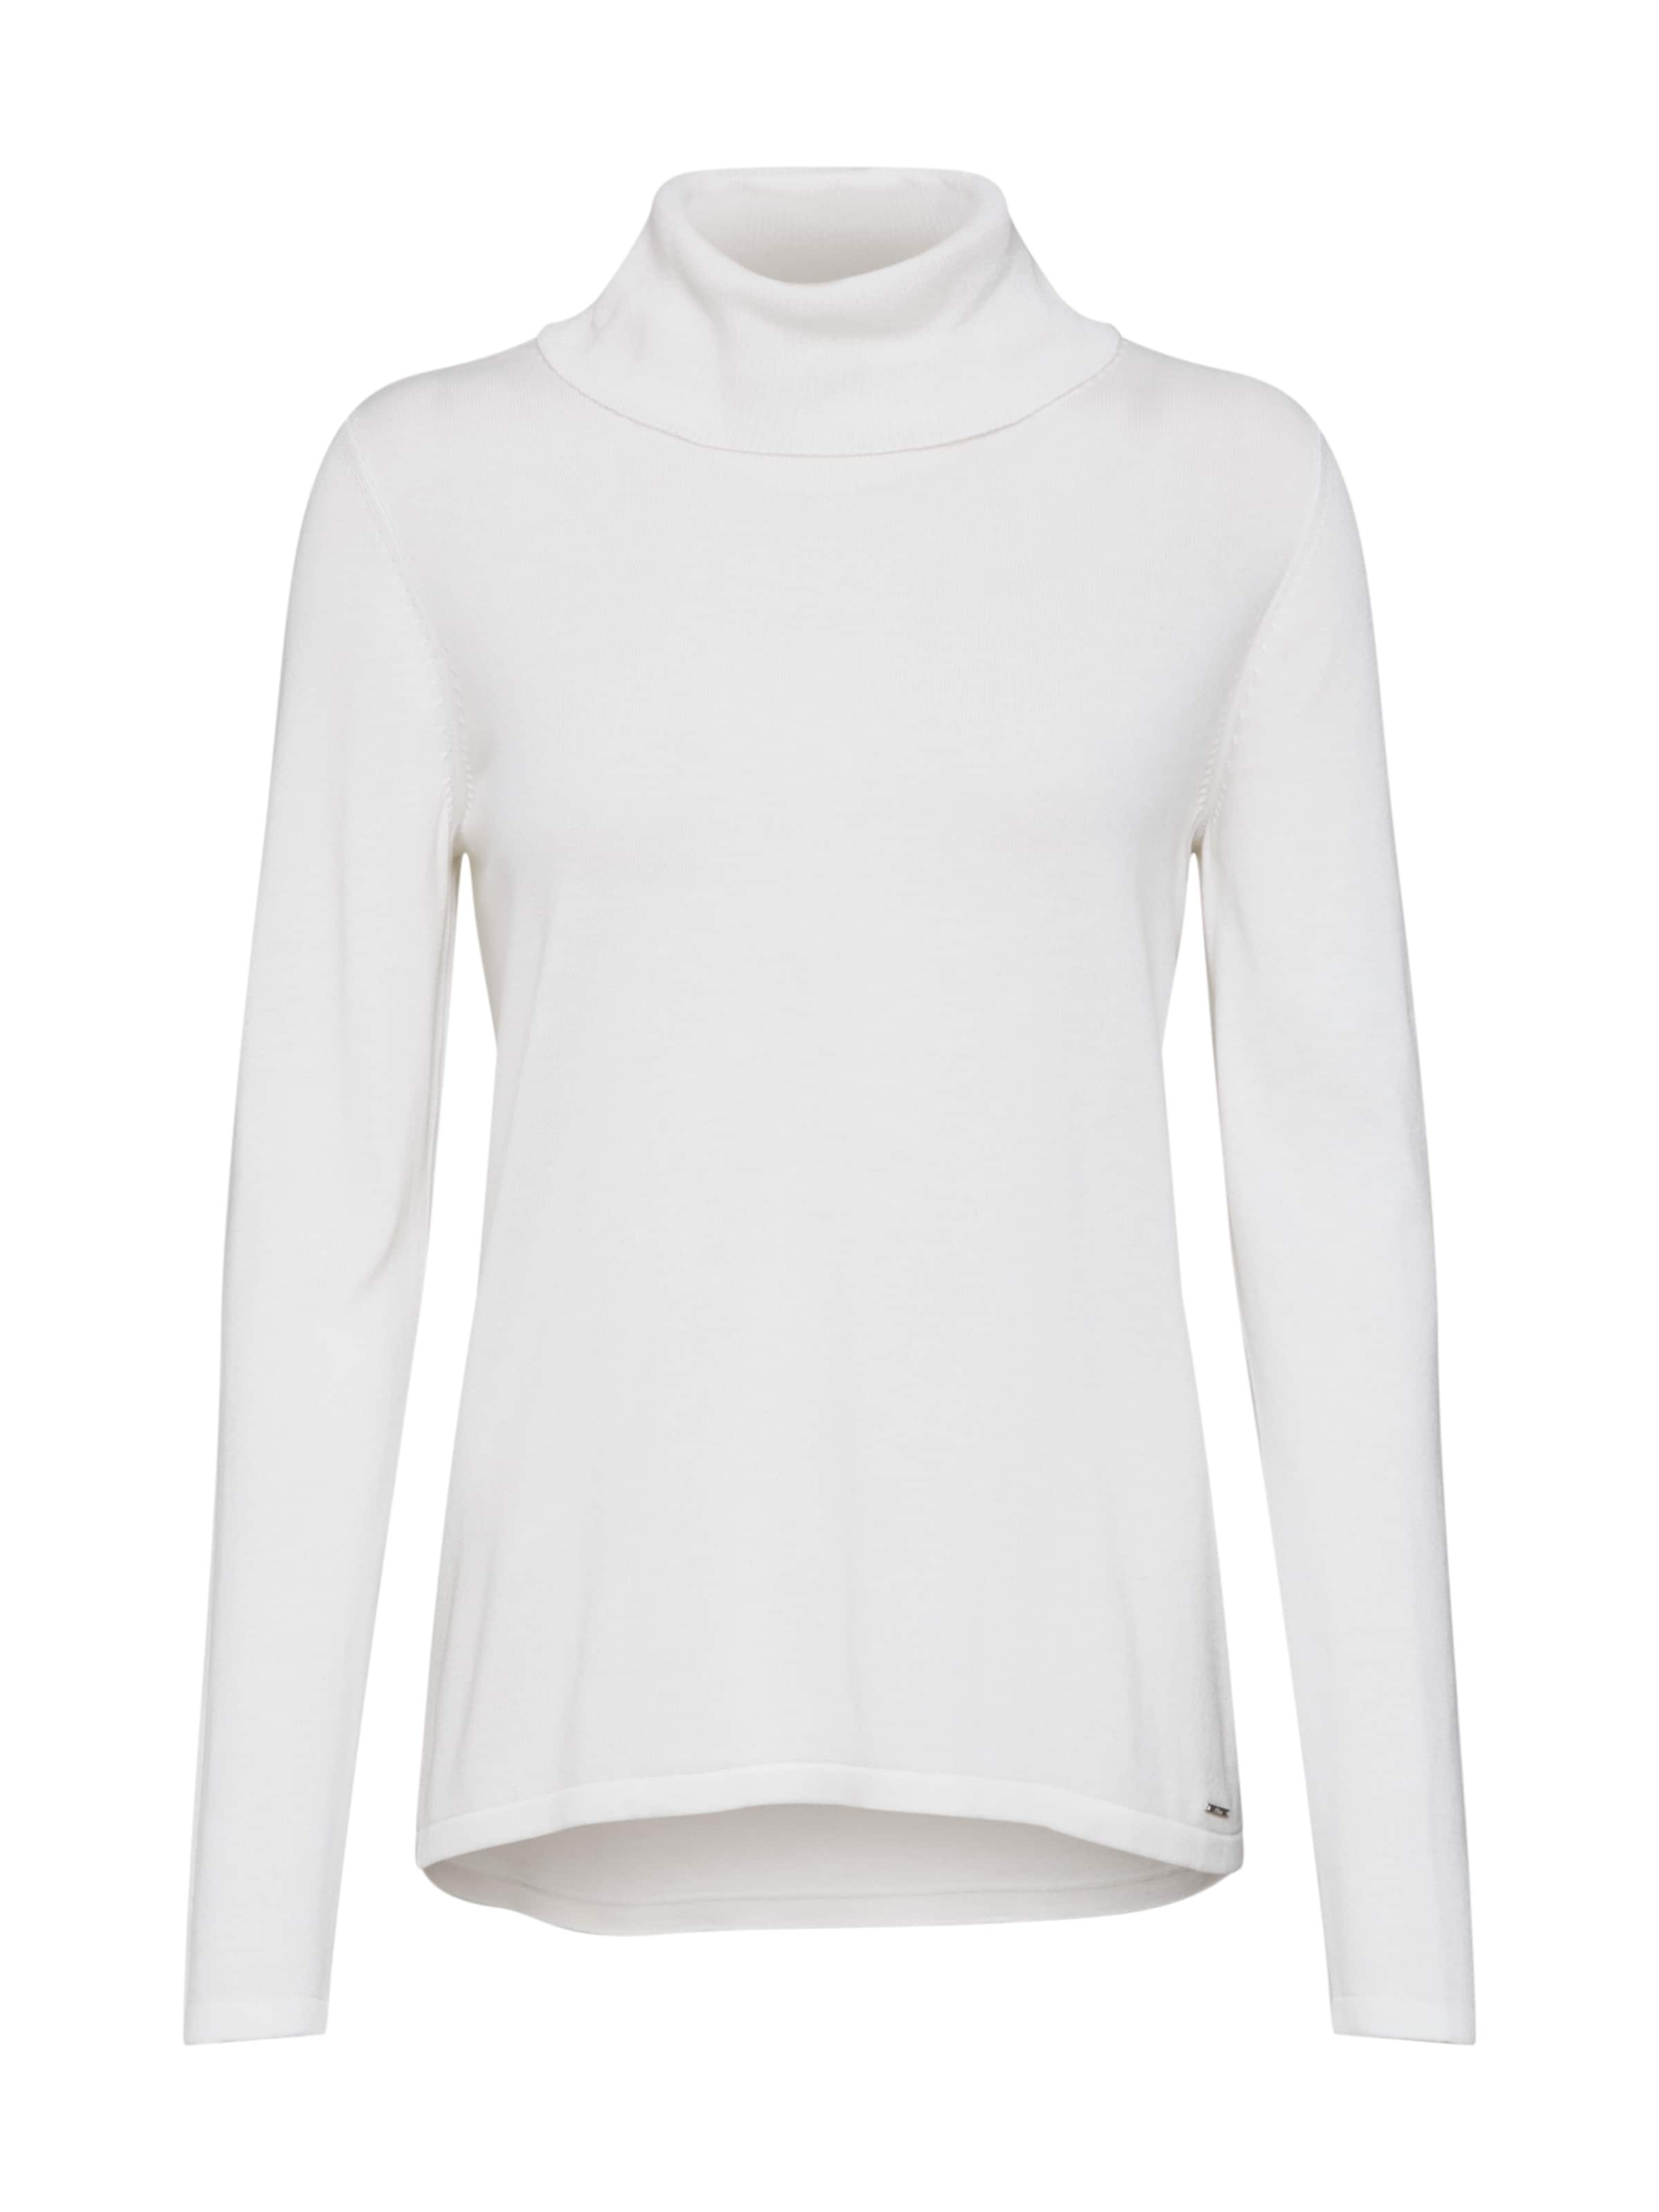 Label Pullover Red S In oliver Offwhite wkXnP0O8